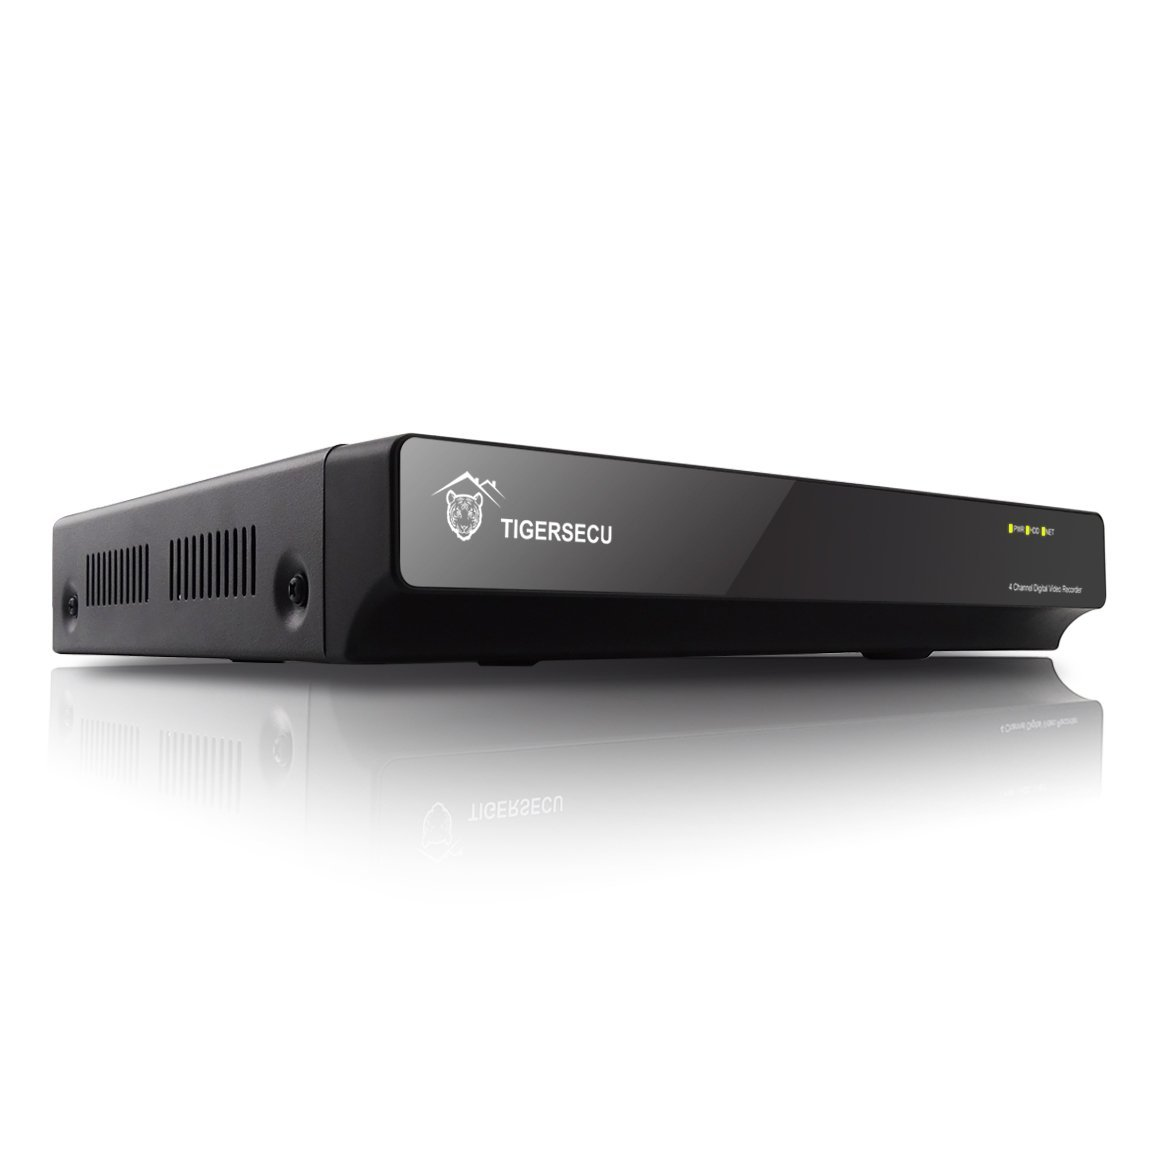 TIGERSECU Analog D1 4-Channel Home Security DVR Digital Video Recorder (No HDD and Cameras) (Certified Refurbished)